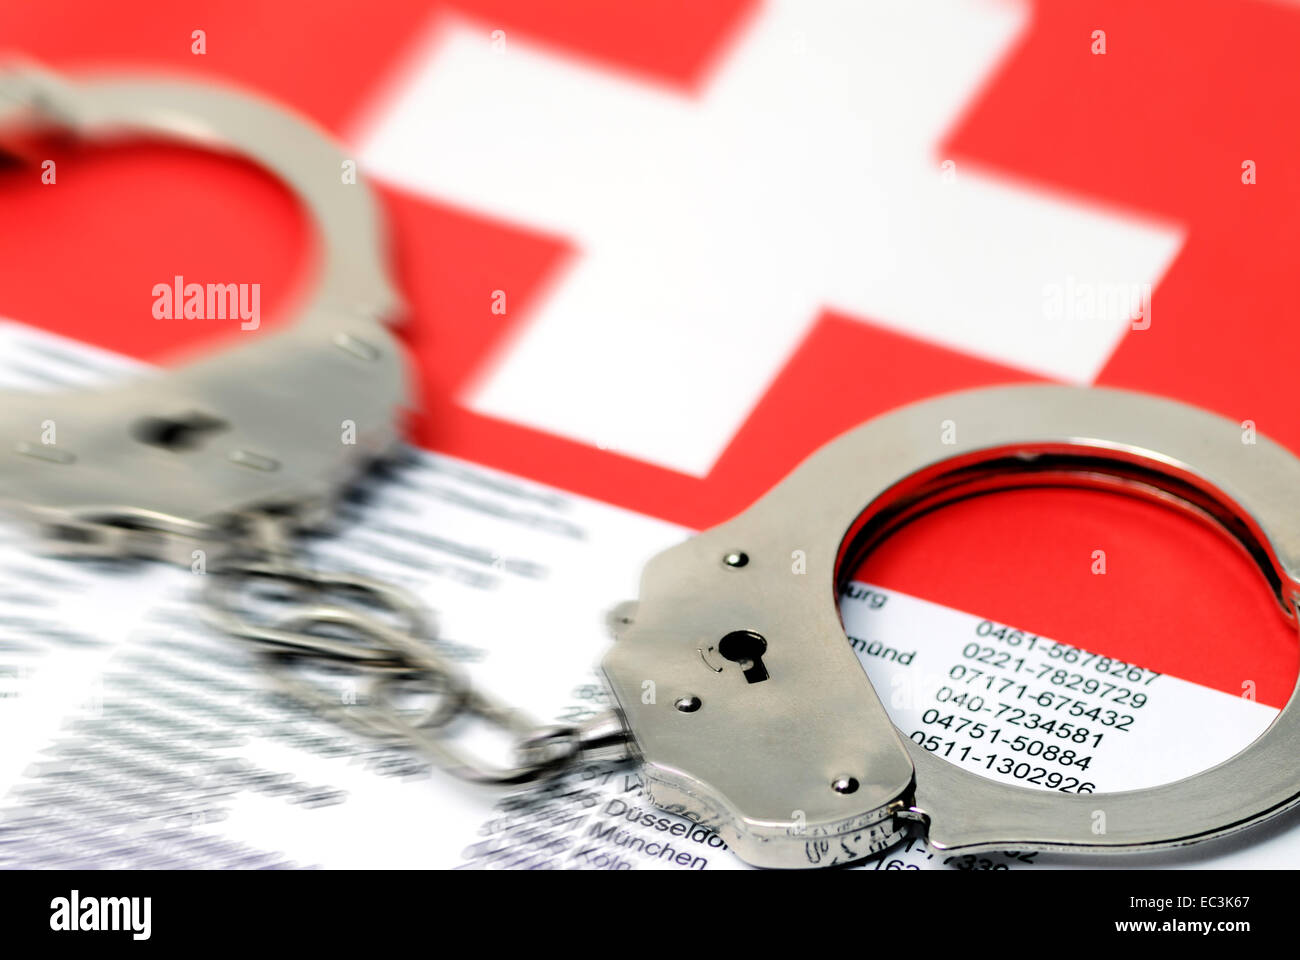 Handcuffs, address list and Swiss flag, illegal earnings - Stock Image